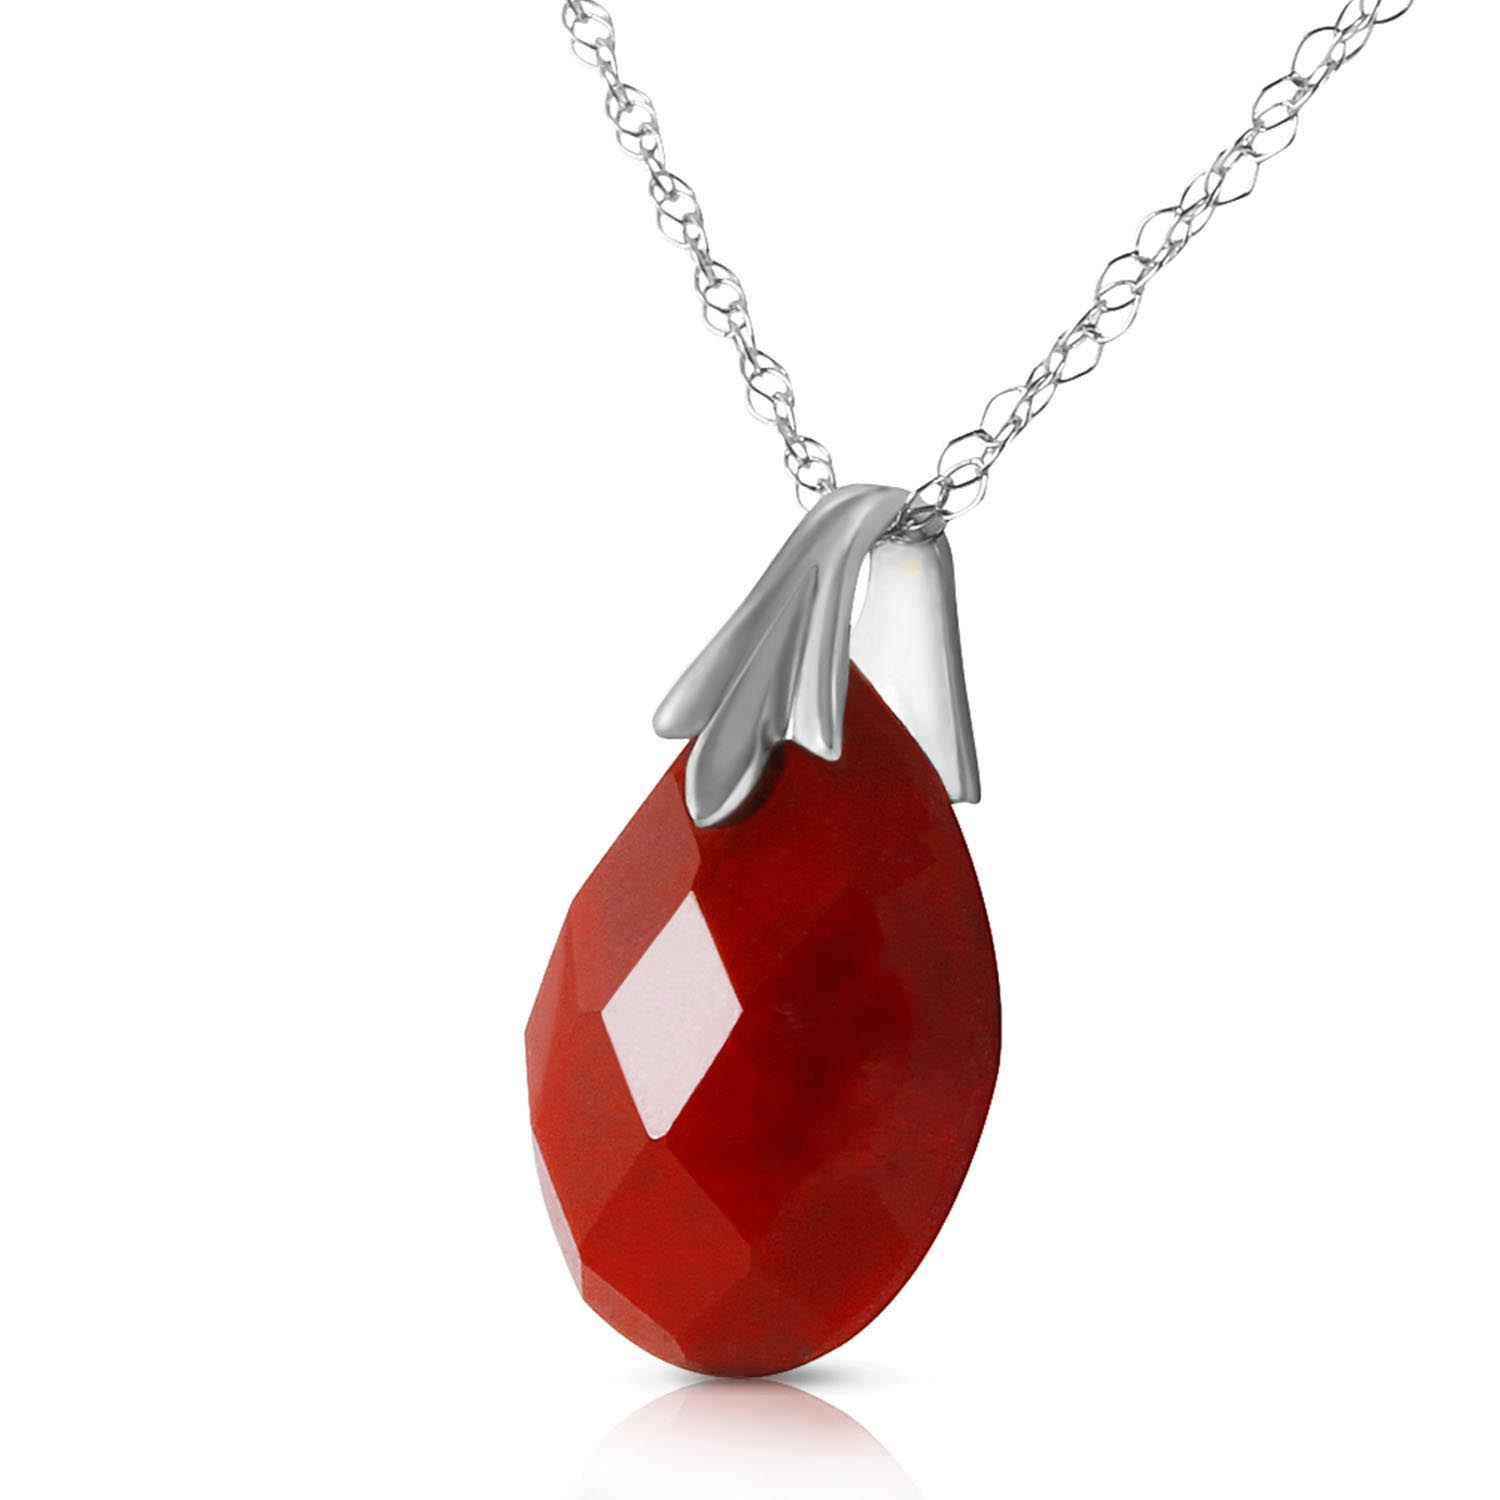 Ruby Briolette Pendant Necklace 4.0ct in 9ct White Gold